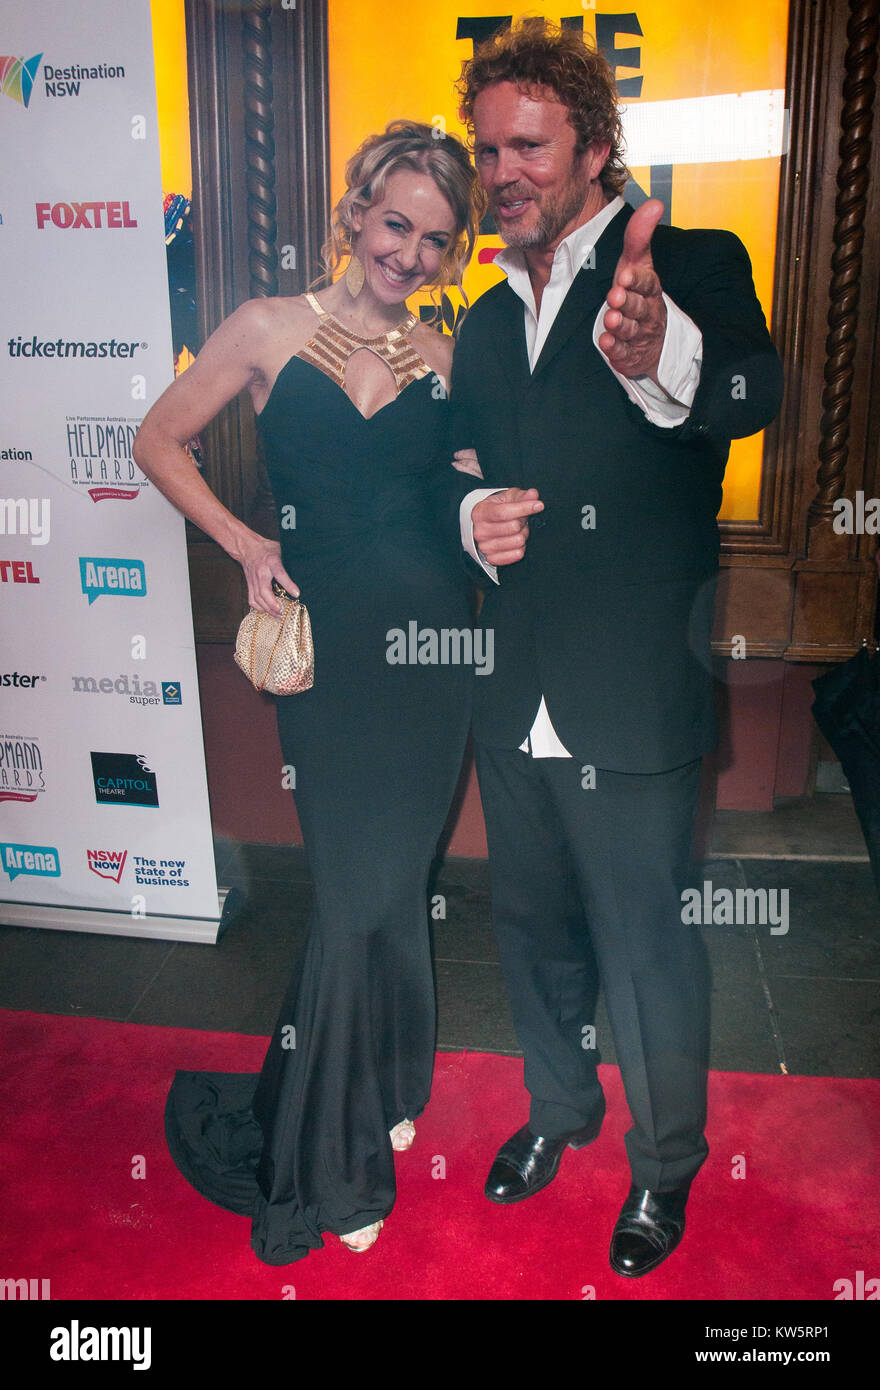 SYDNEY, AUSTRALIA - AUGUST 18: Craig McLaughlan and Vanessa Scammell arrives at the 2014 Helpmann Awards at the - Stock Image